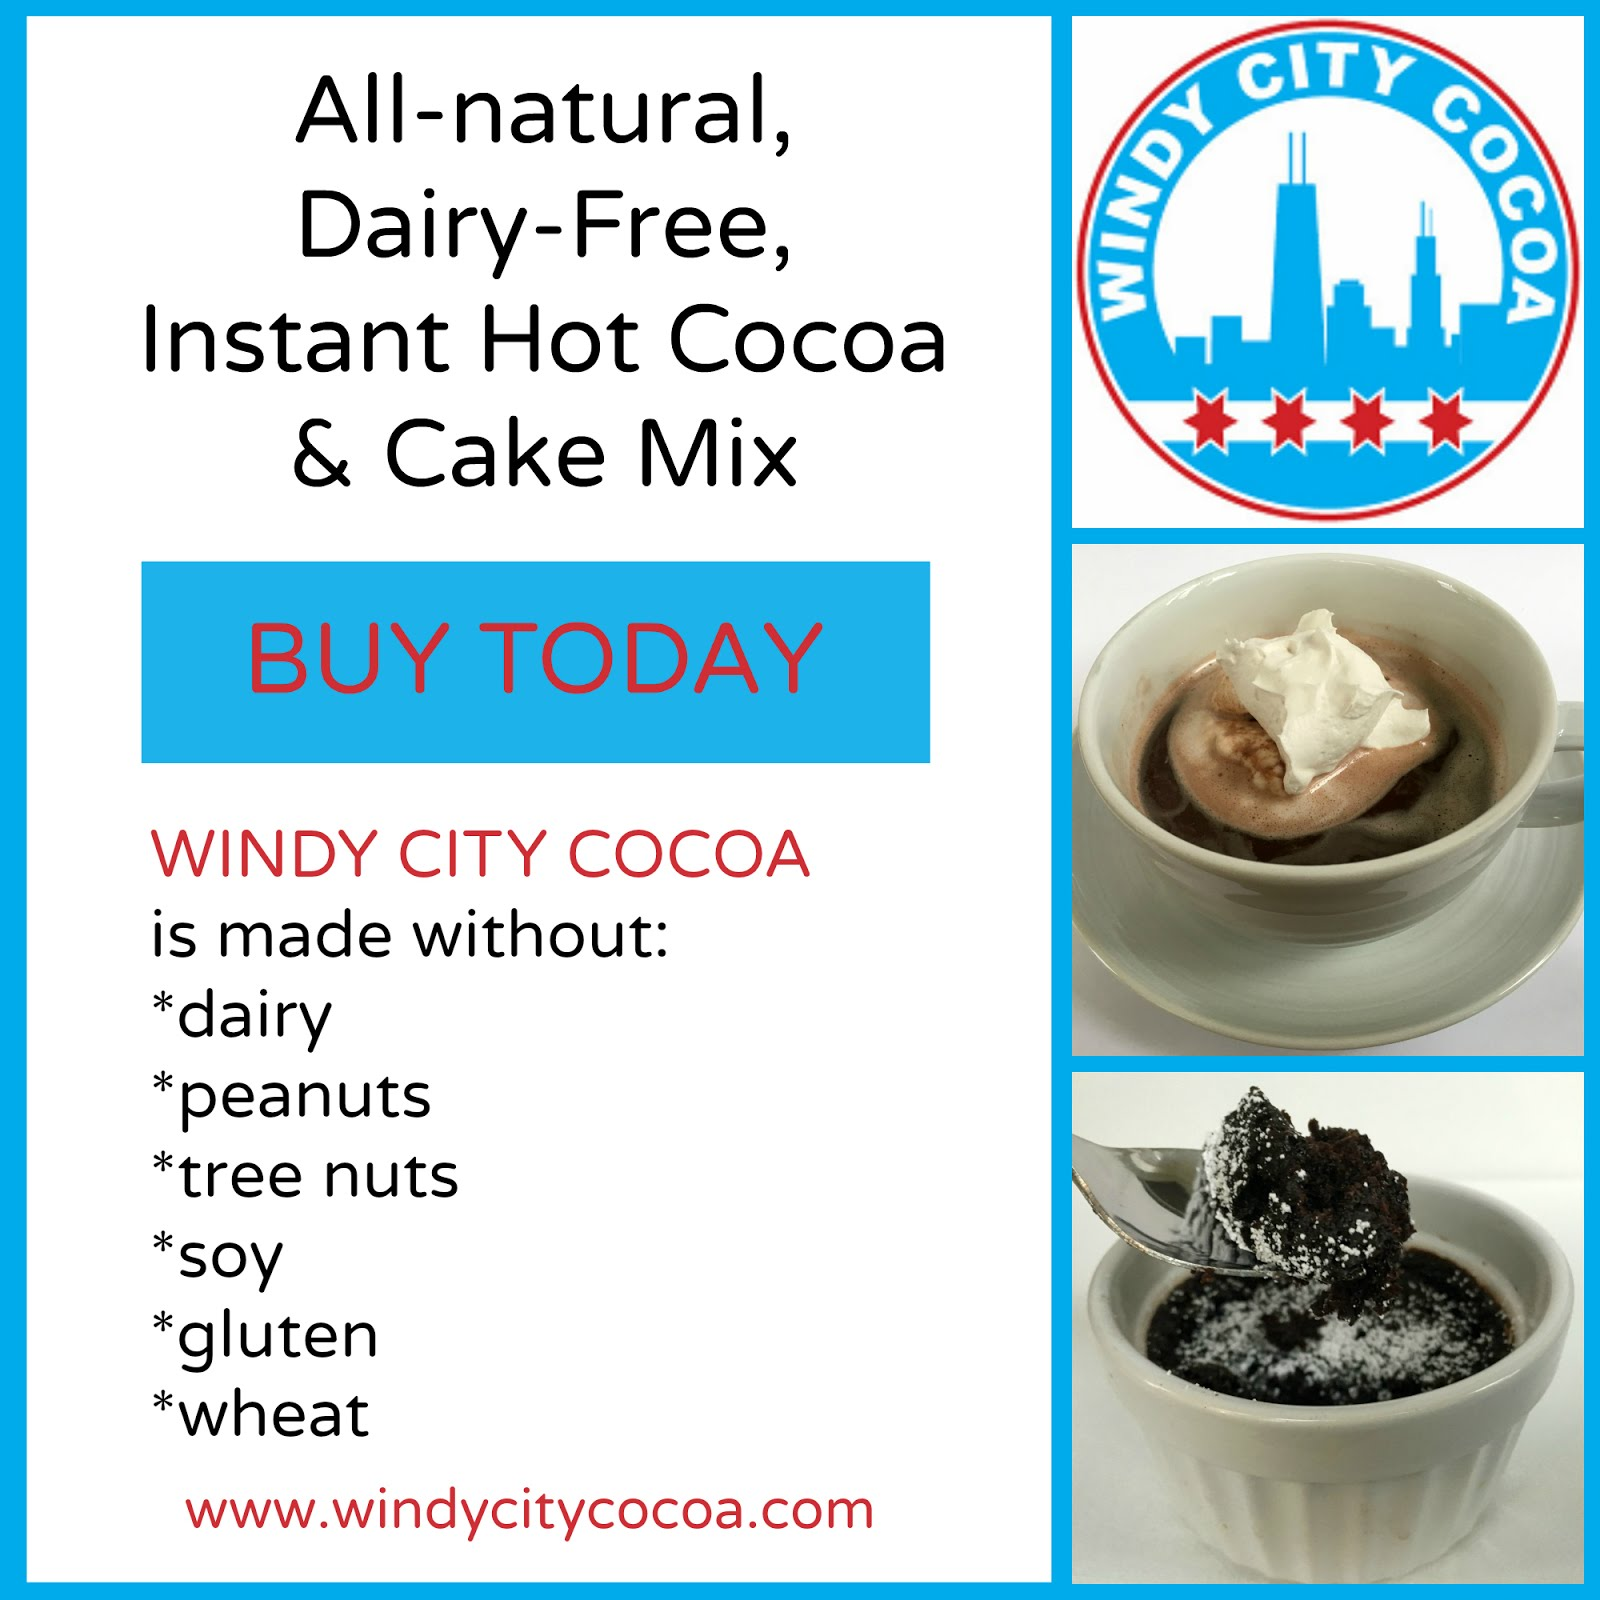 Windy City Cocoa